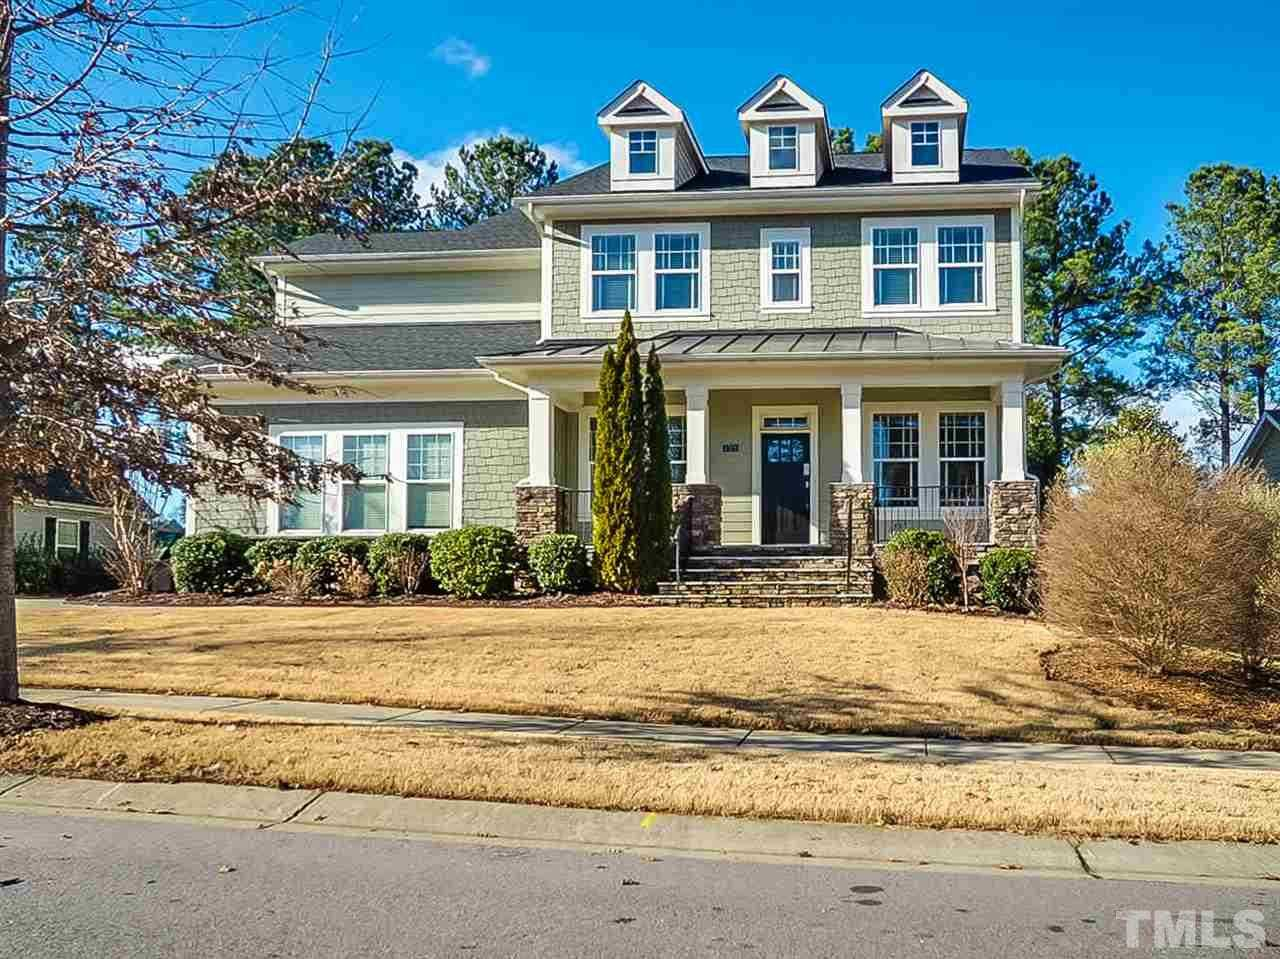 Homes for Sale in Wake Forest - Eddie Cash